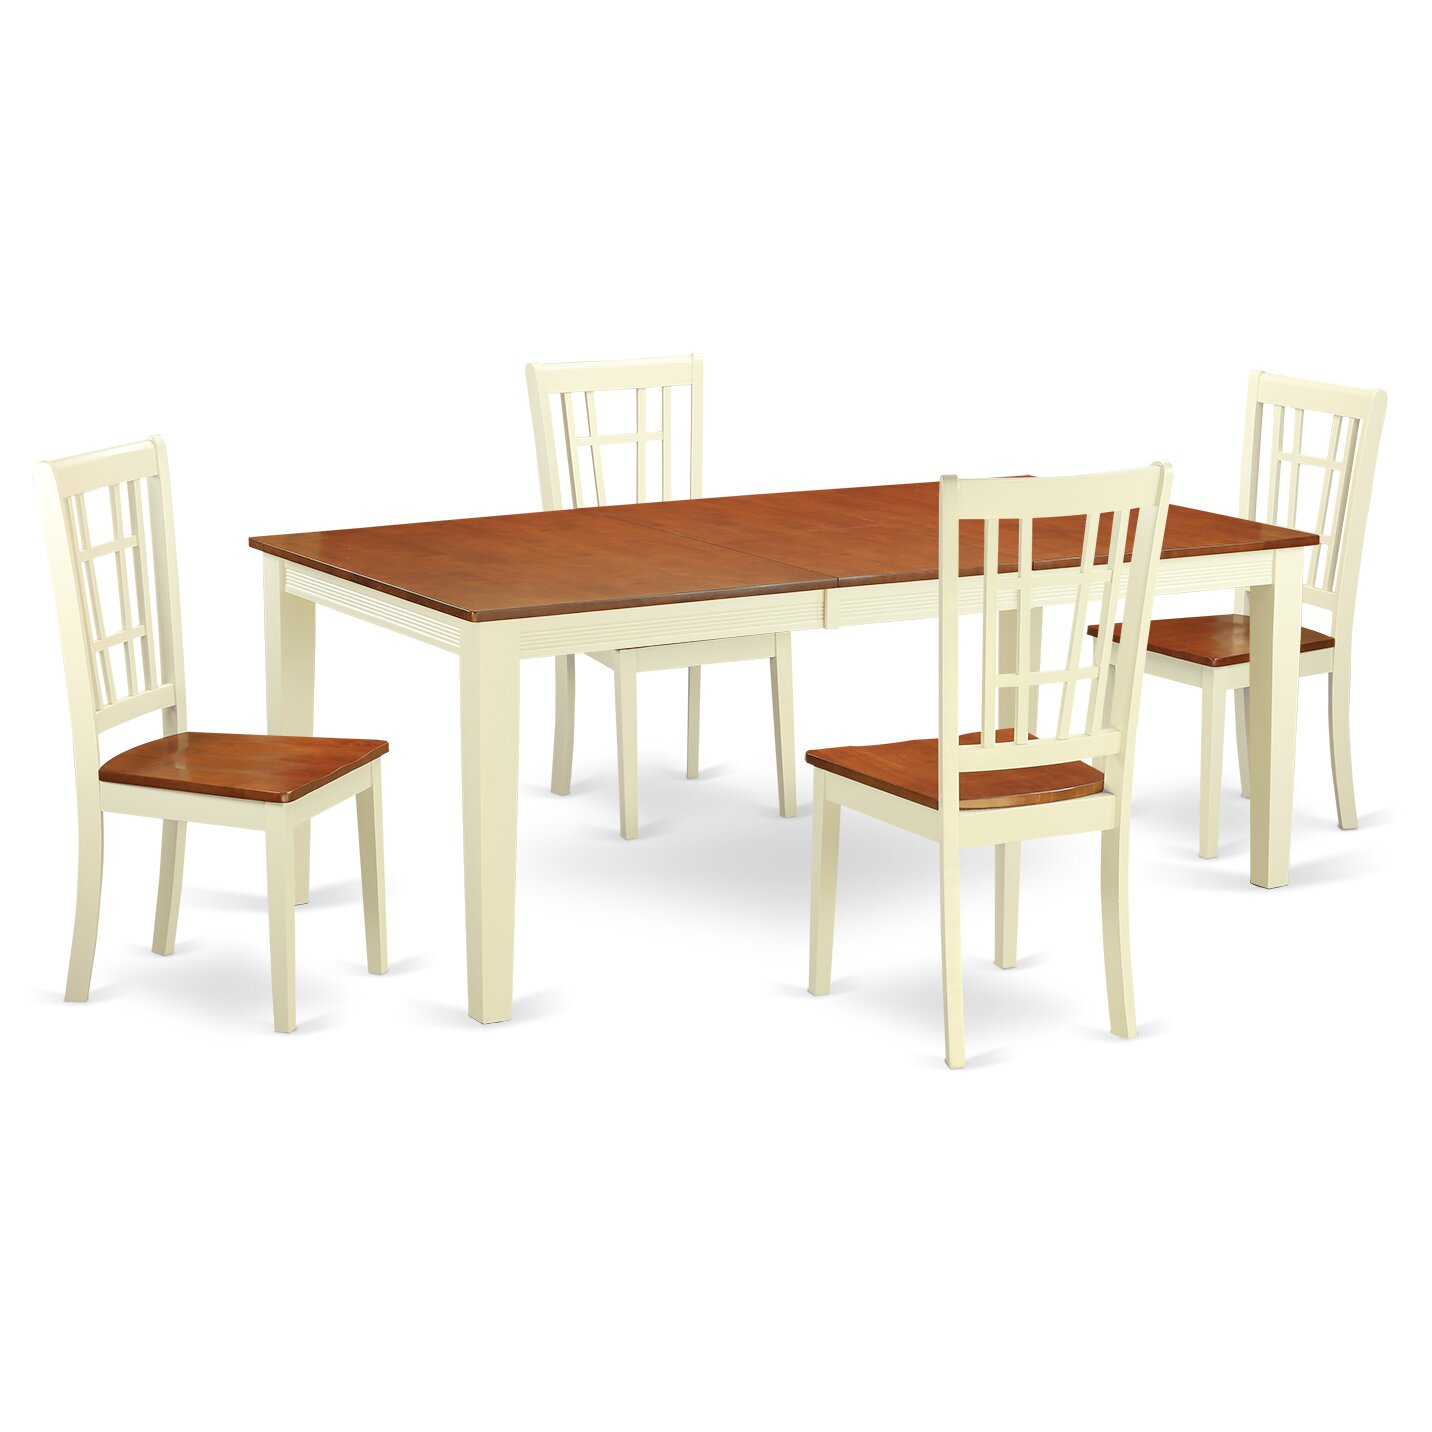 East west quincy 5 piece dining set wayfair for Kitchen dinette sets